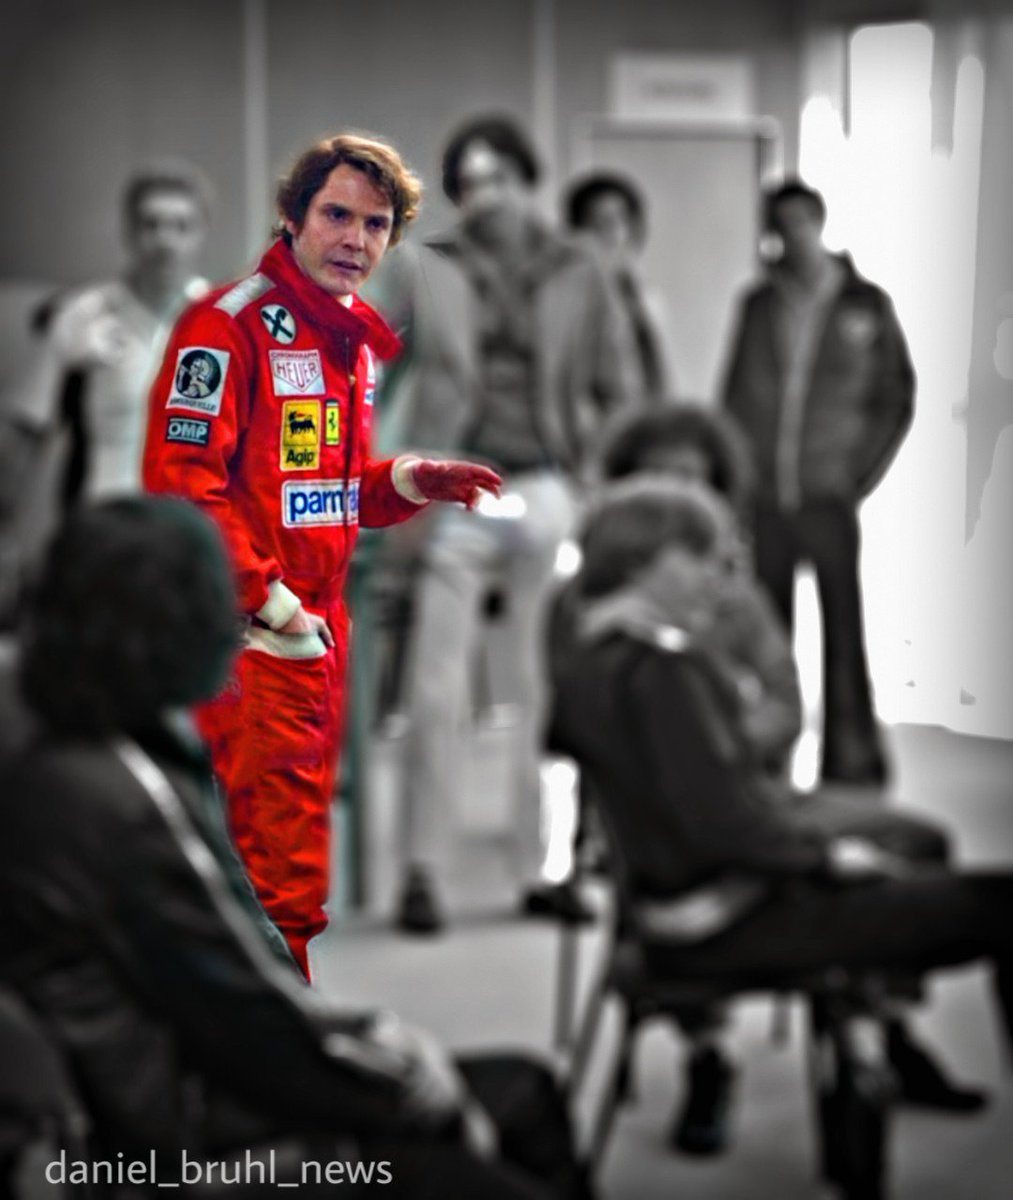 """I have the track record here. I'm the only person in history to do the ring in under 7 minutes, so actually it's to my advantage to race here today...because I'm quicker than all of you!"" #NikiLauda #Rush #moviequote #DanielBrühl #myedit #racing #legend #f1 #formulaone"